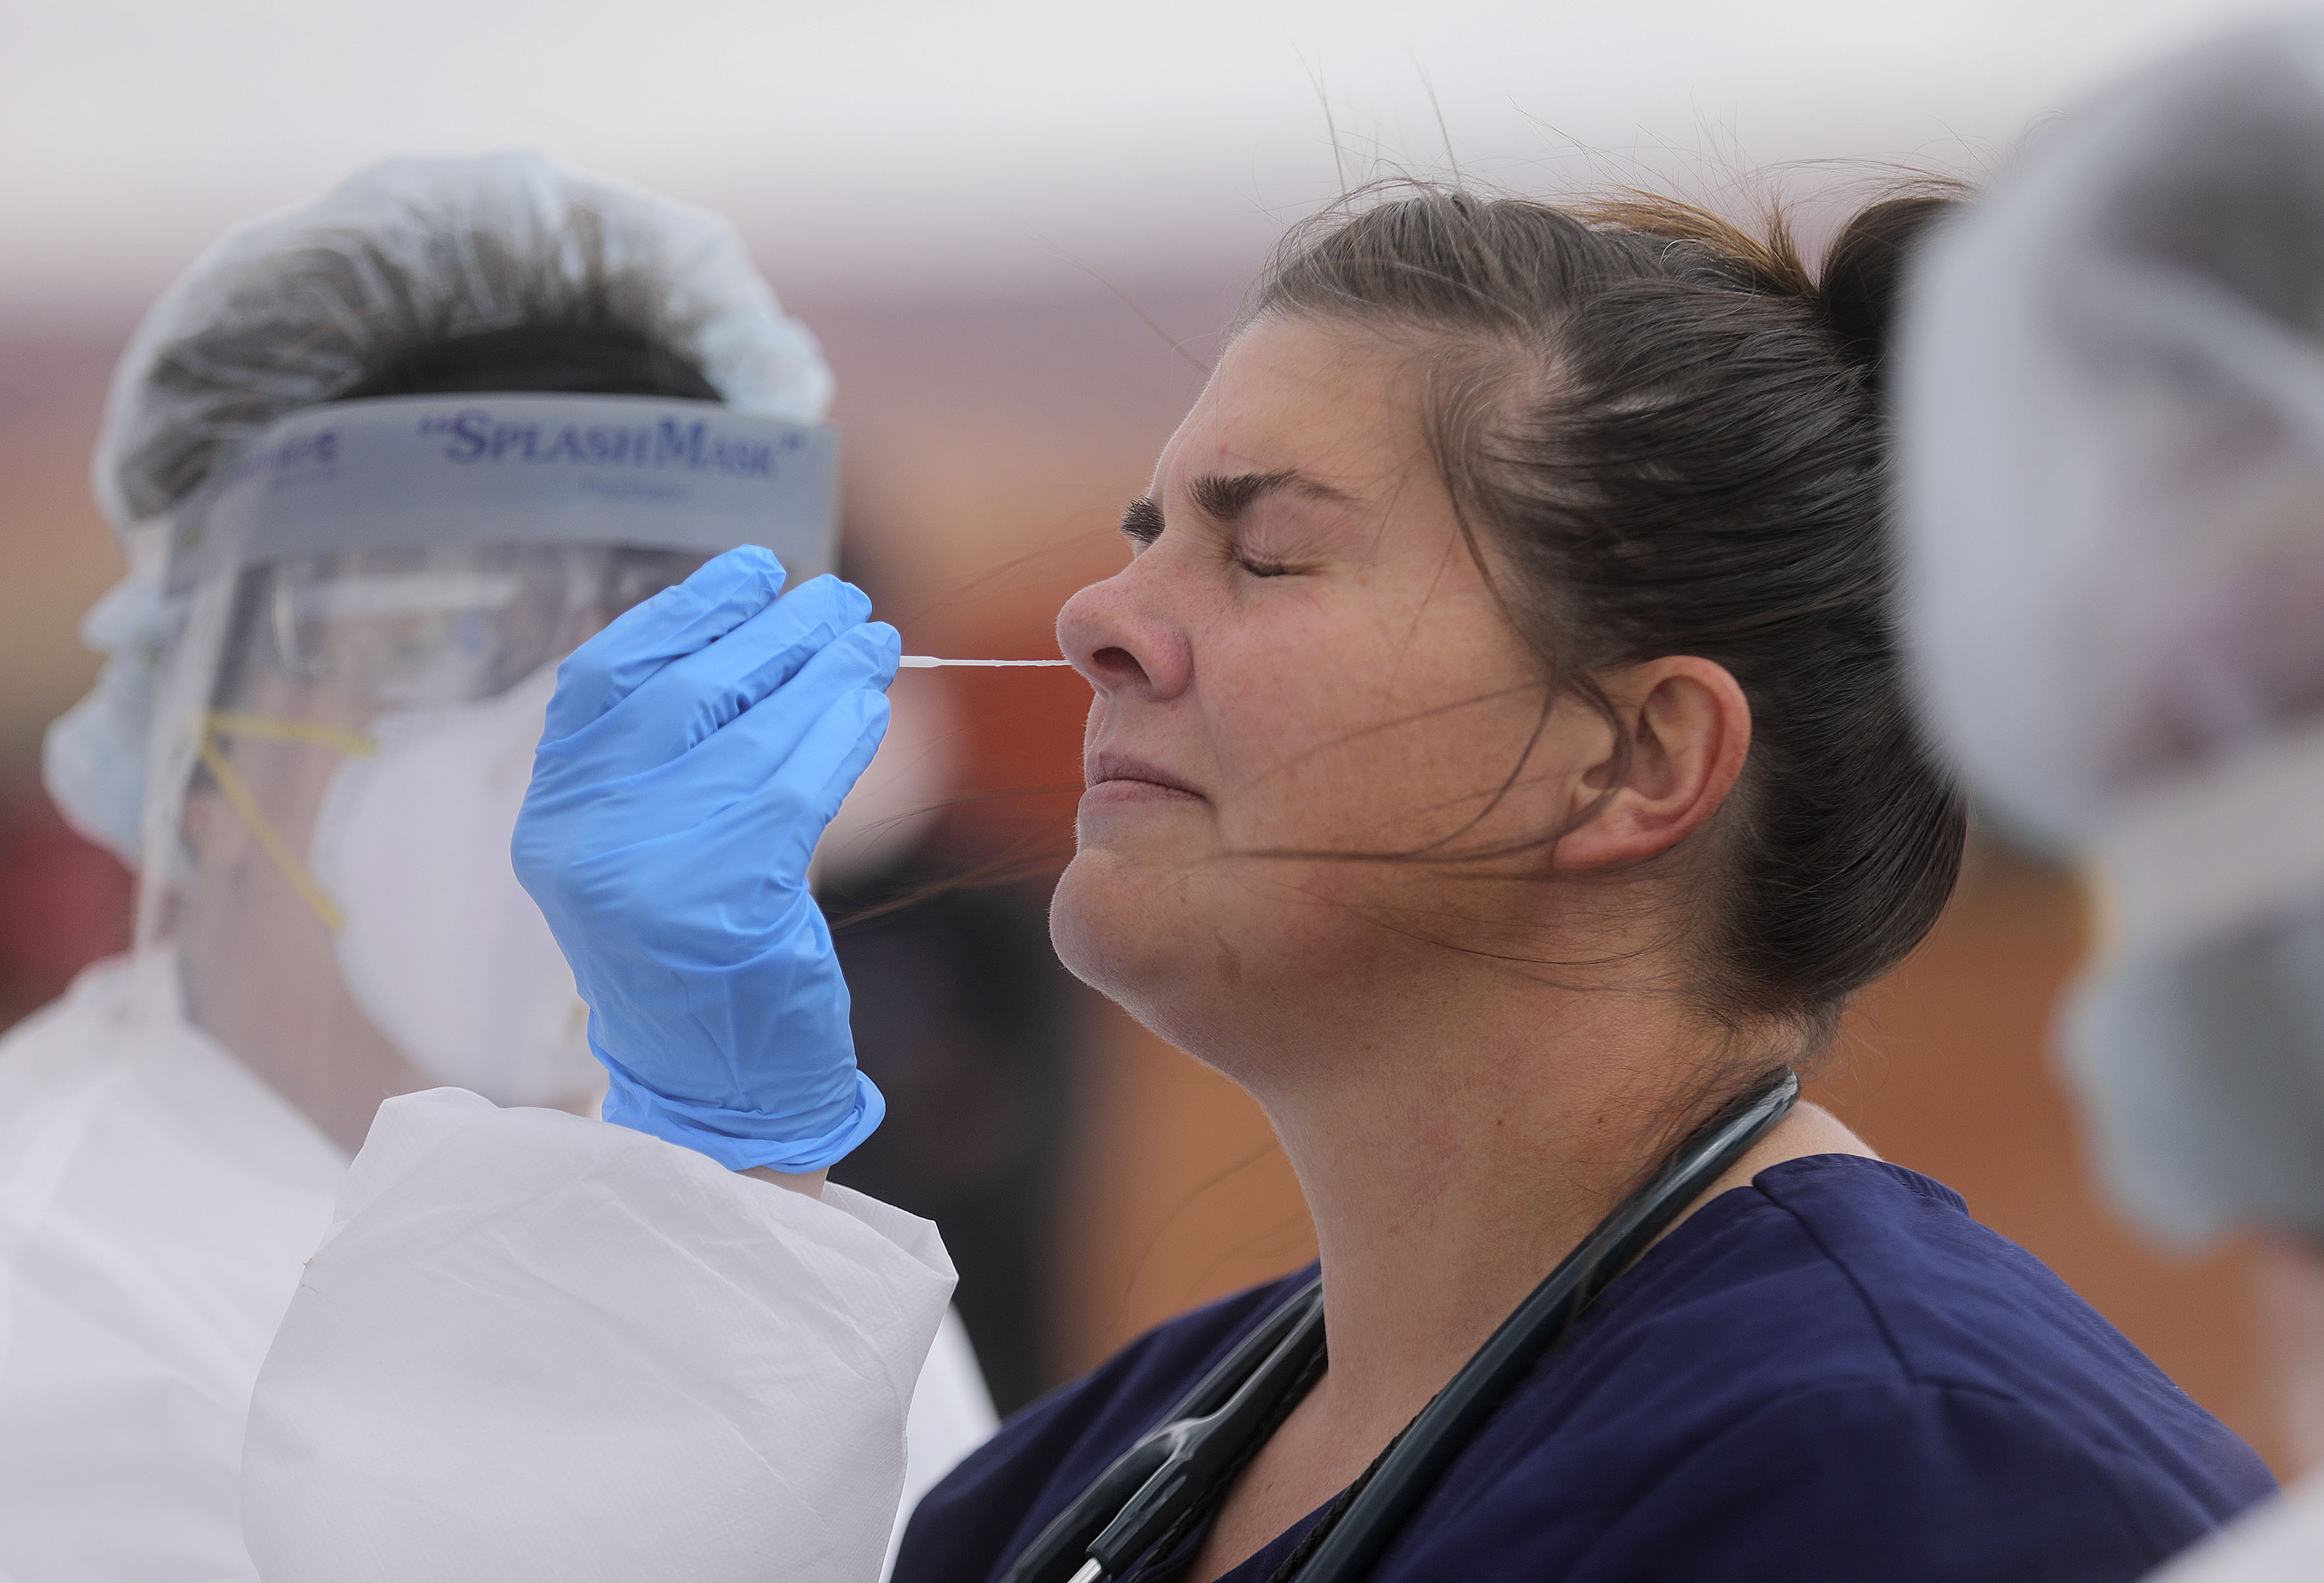 Amber Rasmussen, a physician assistant who has been administering the COVID-19 tests to local patients prior to mobile testing and providing triage at Monument Valley Health Center in Oljato-Monument Valley, San Juan County, gets tested for COVID-19 outside center on Thursday, April 16, 2020.